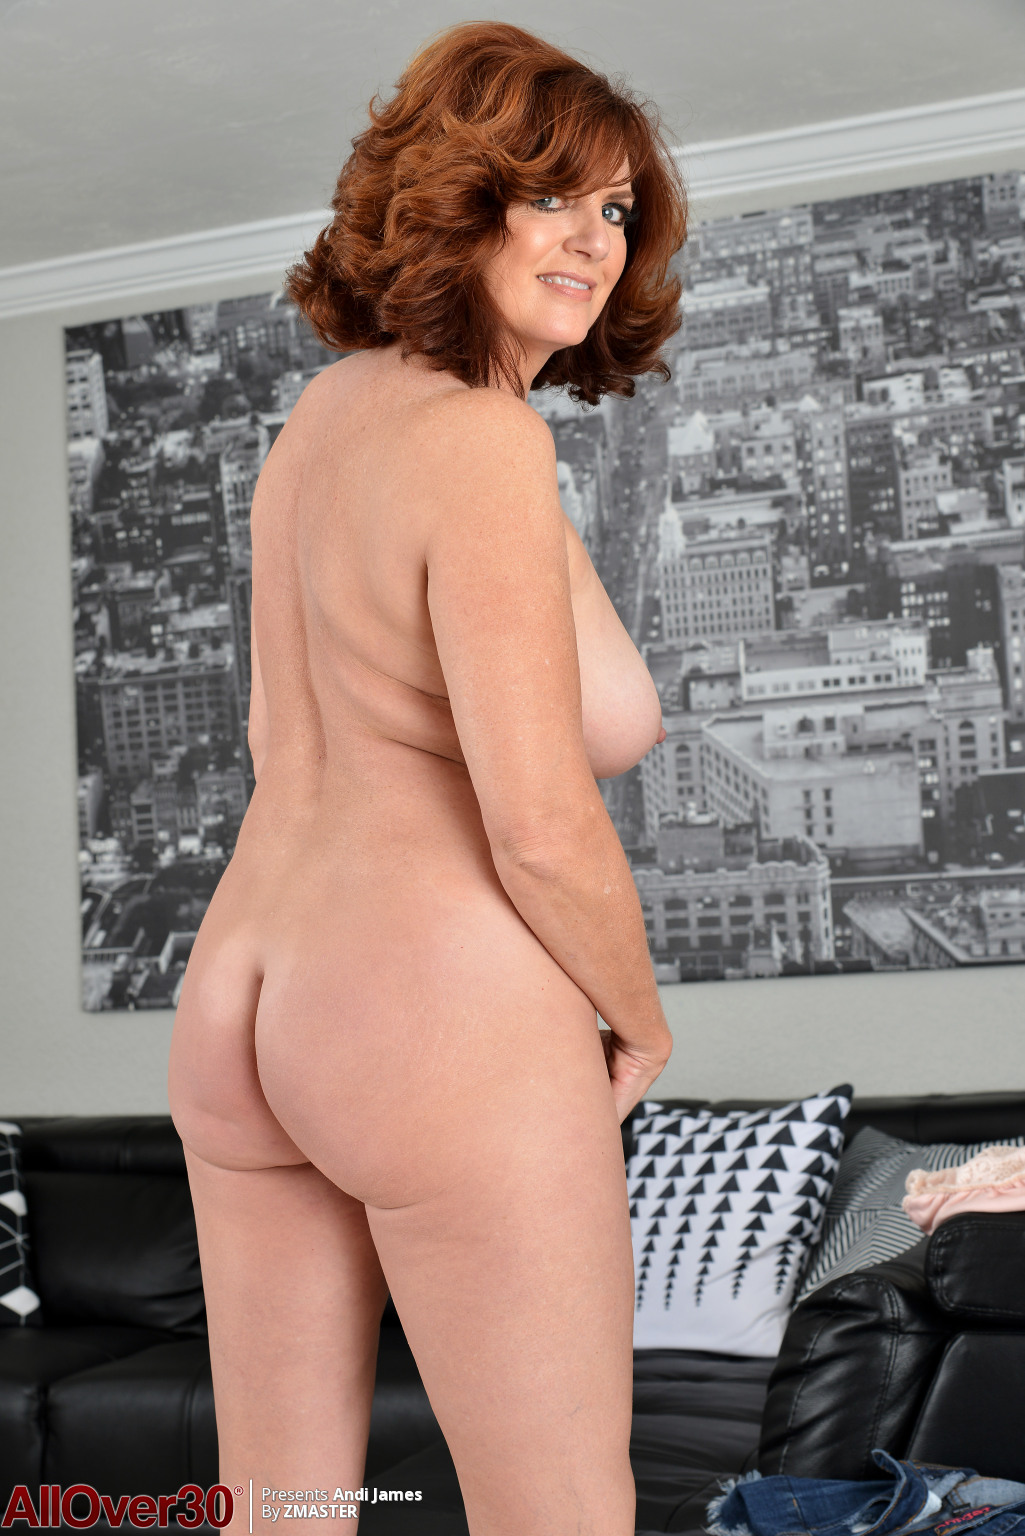 allover30free- hot older women - 52 year old andi james from